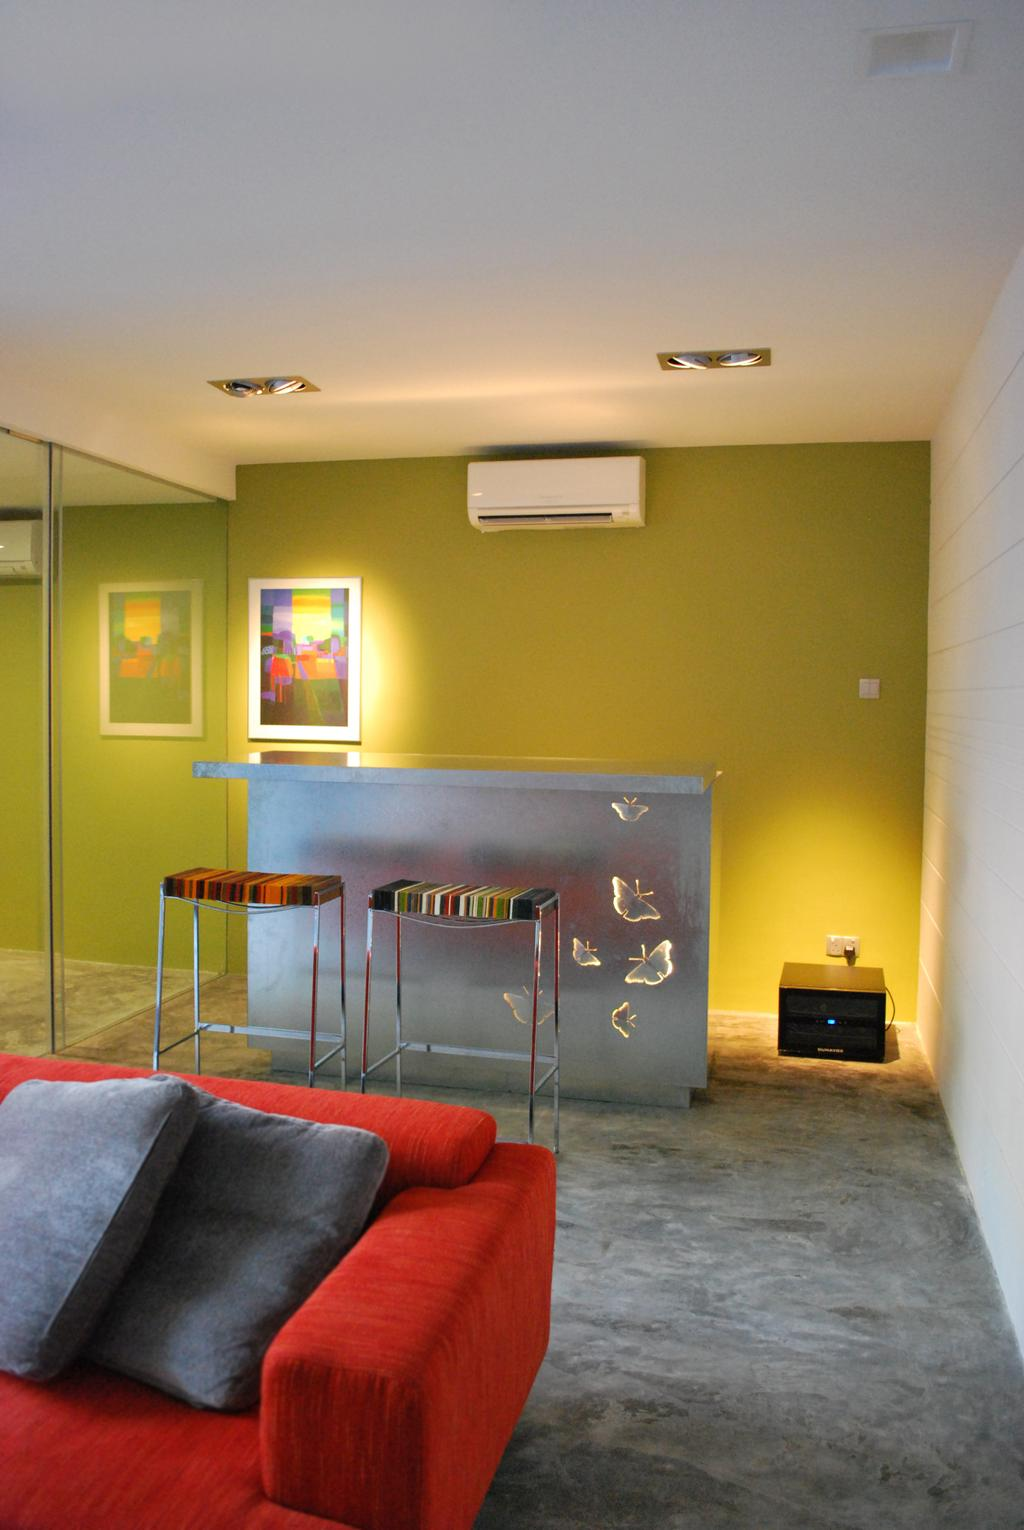 Transitional, Landed, Living Room, Tagore Avenue, Architect, Czarl Architects, Dining Room, Indoors, Interior Design, Room